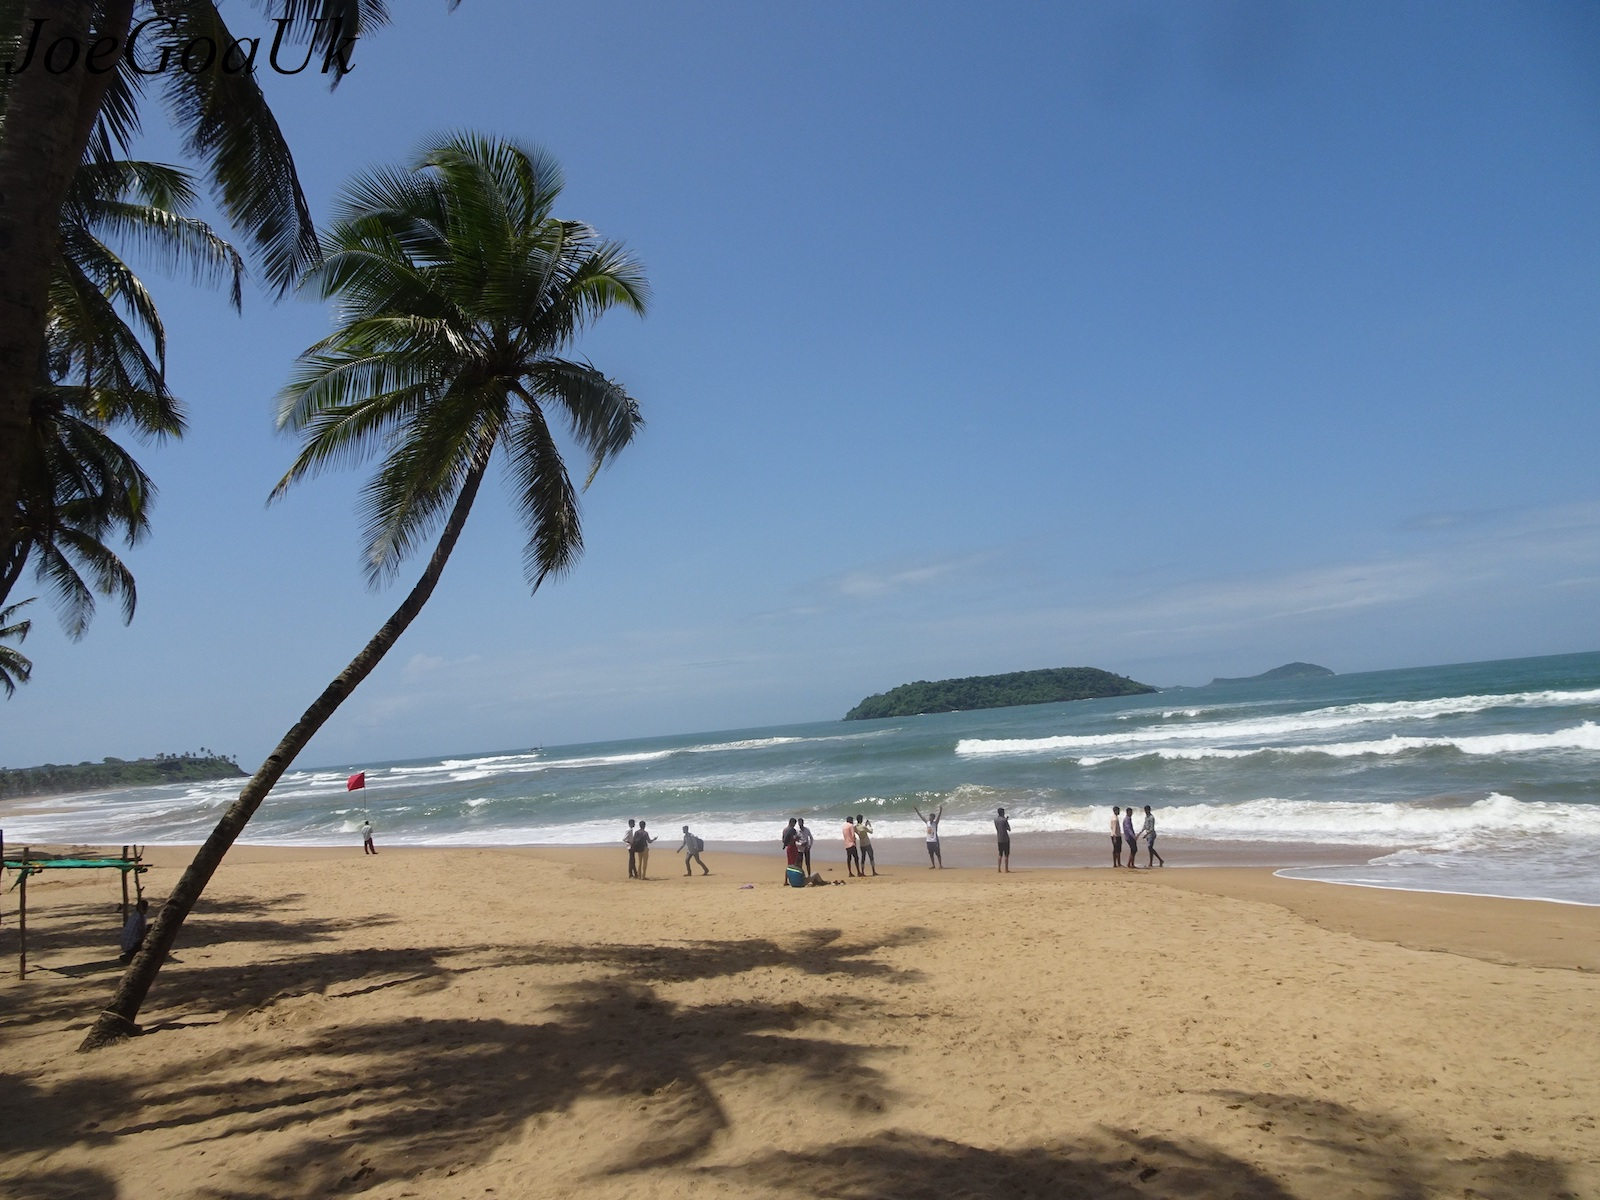 Baina beach in Goa, India